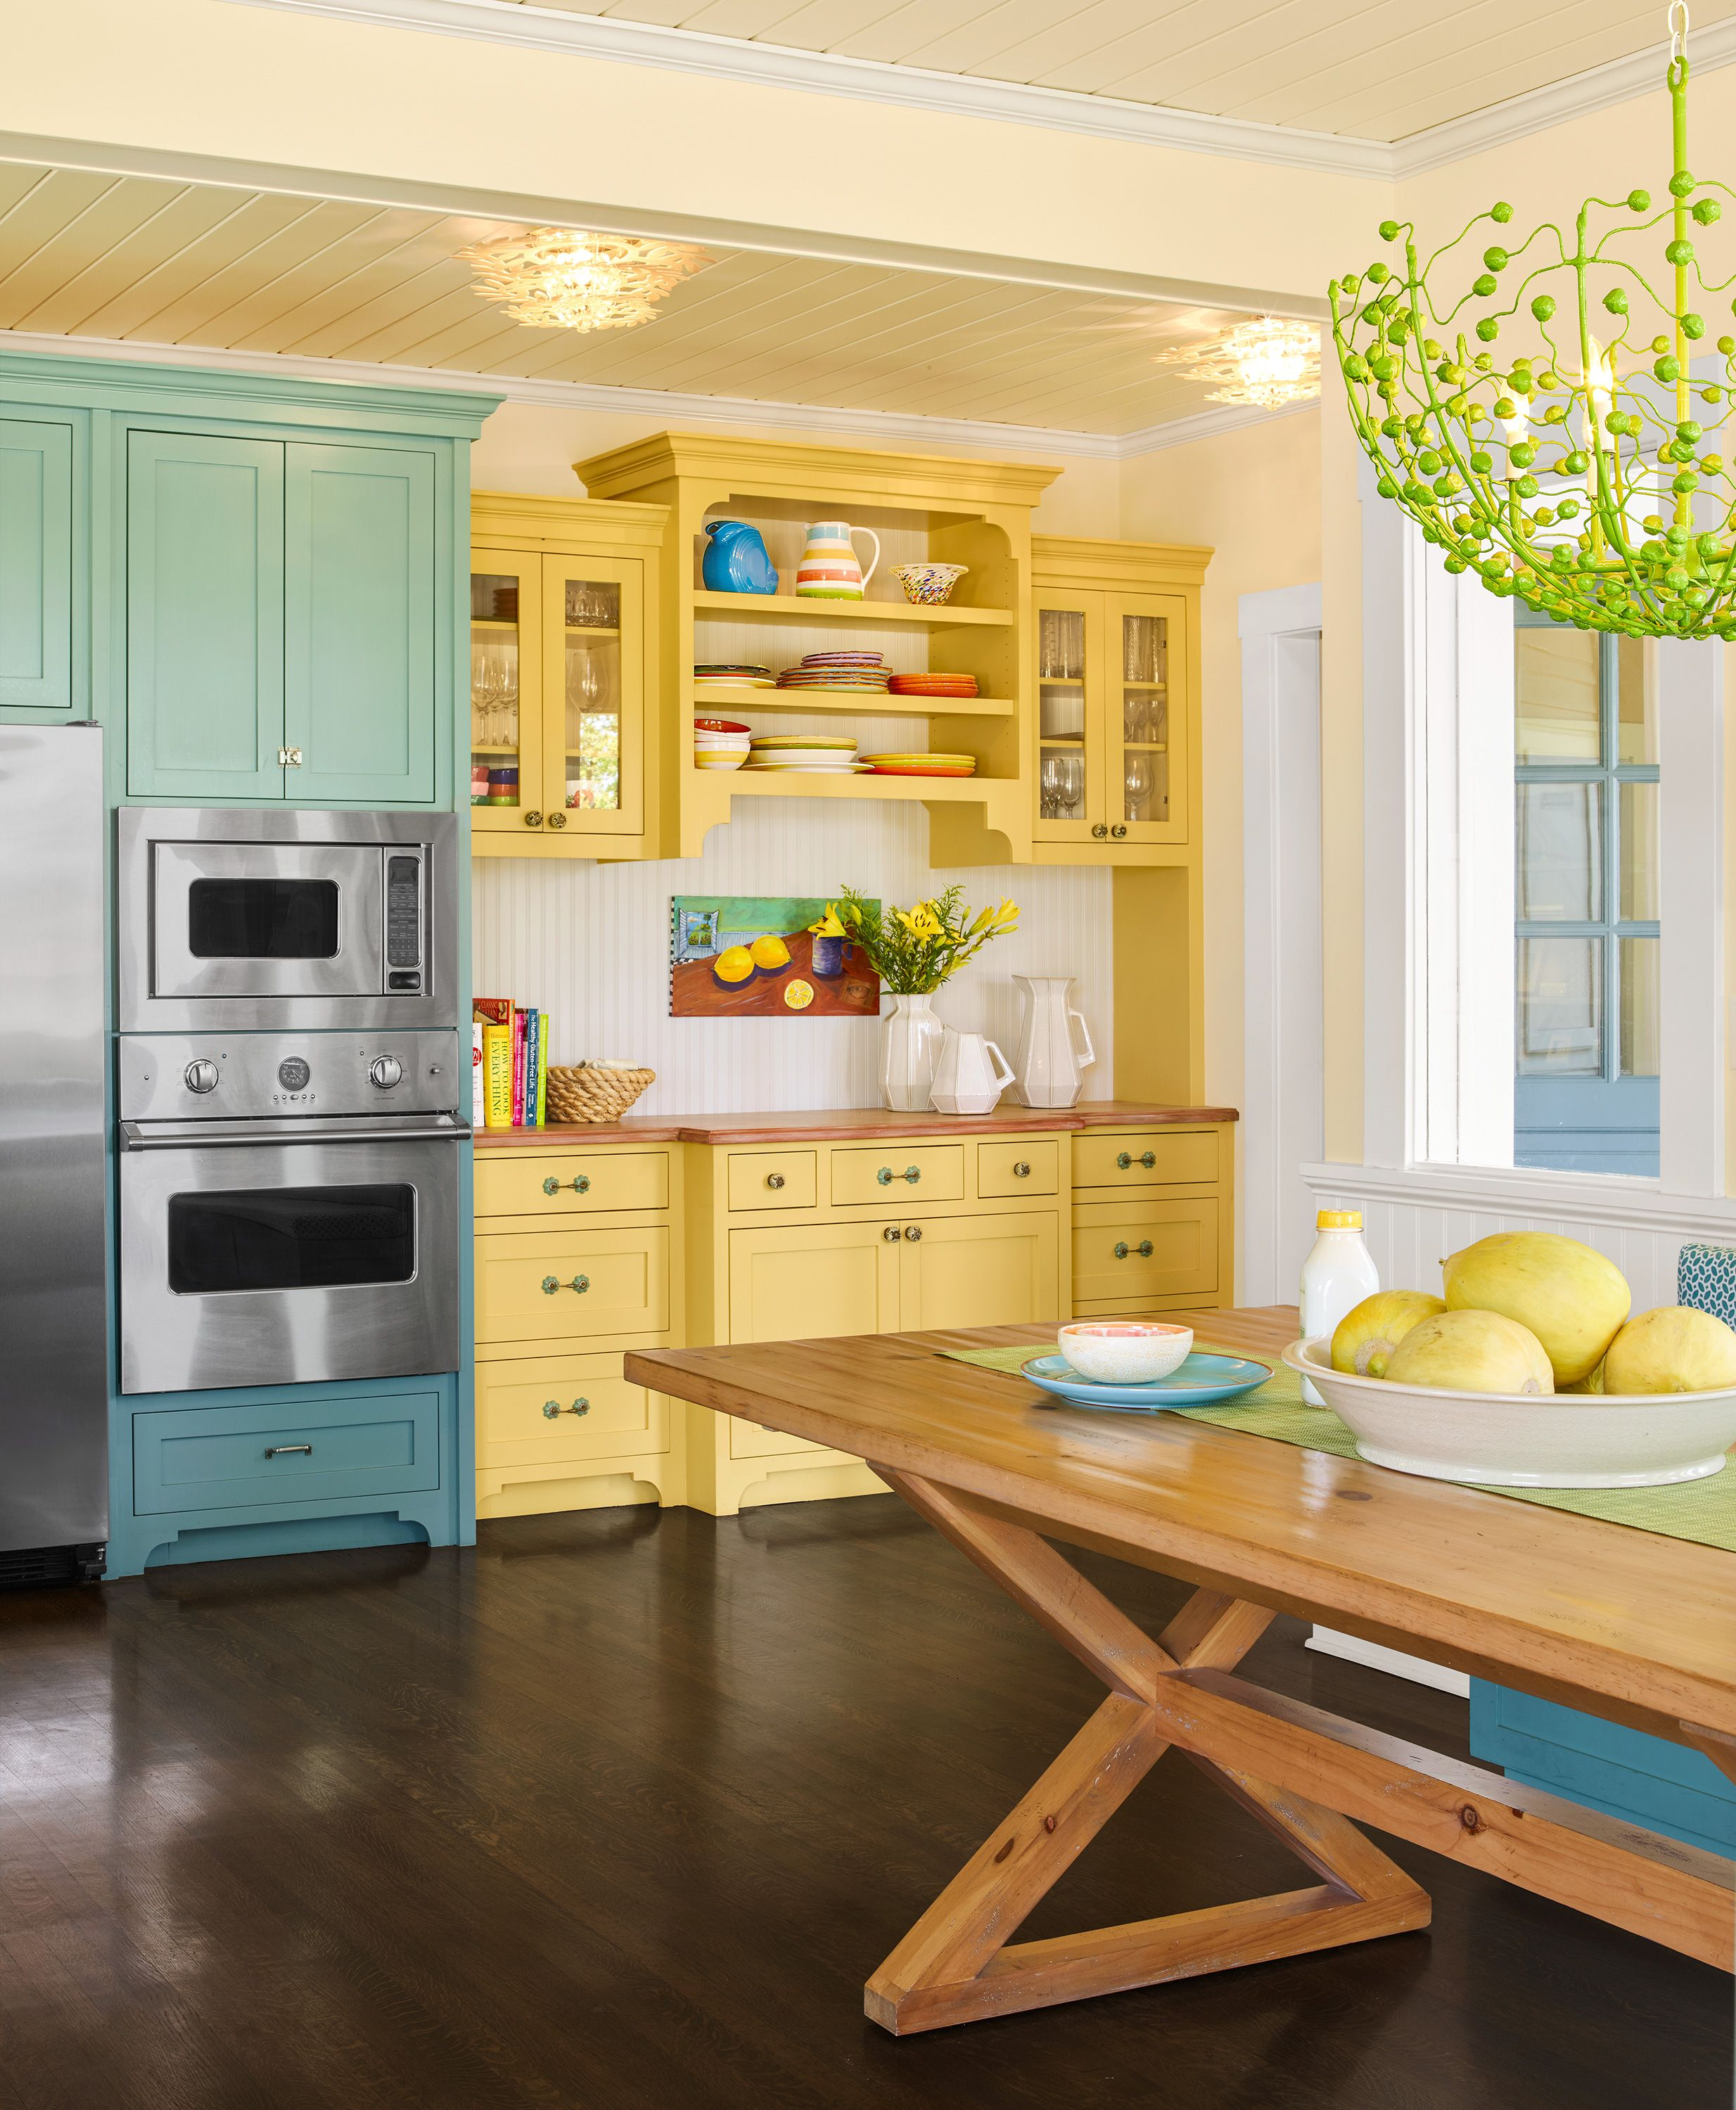 Bright Ideas for a Colorful Whole House Remodel | White box ...